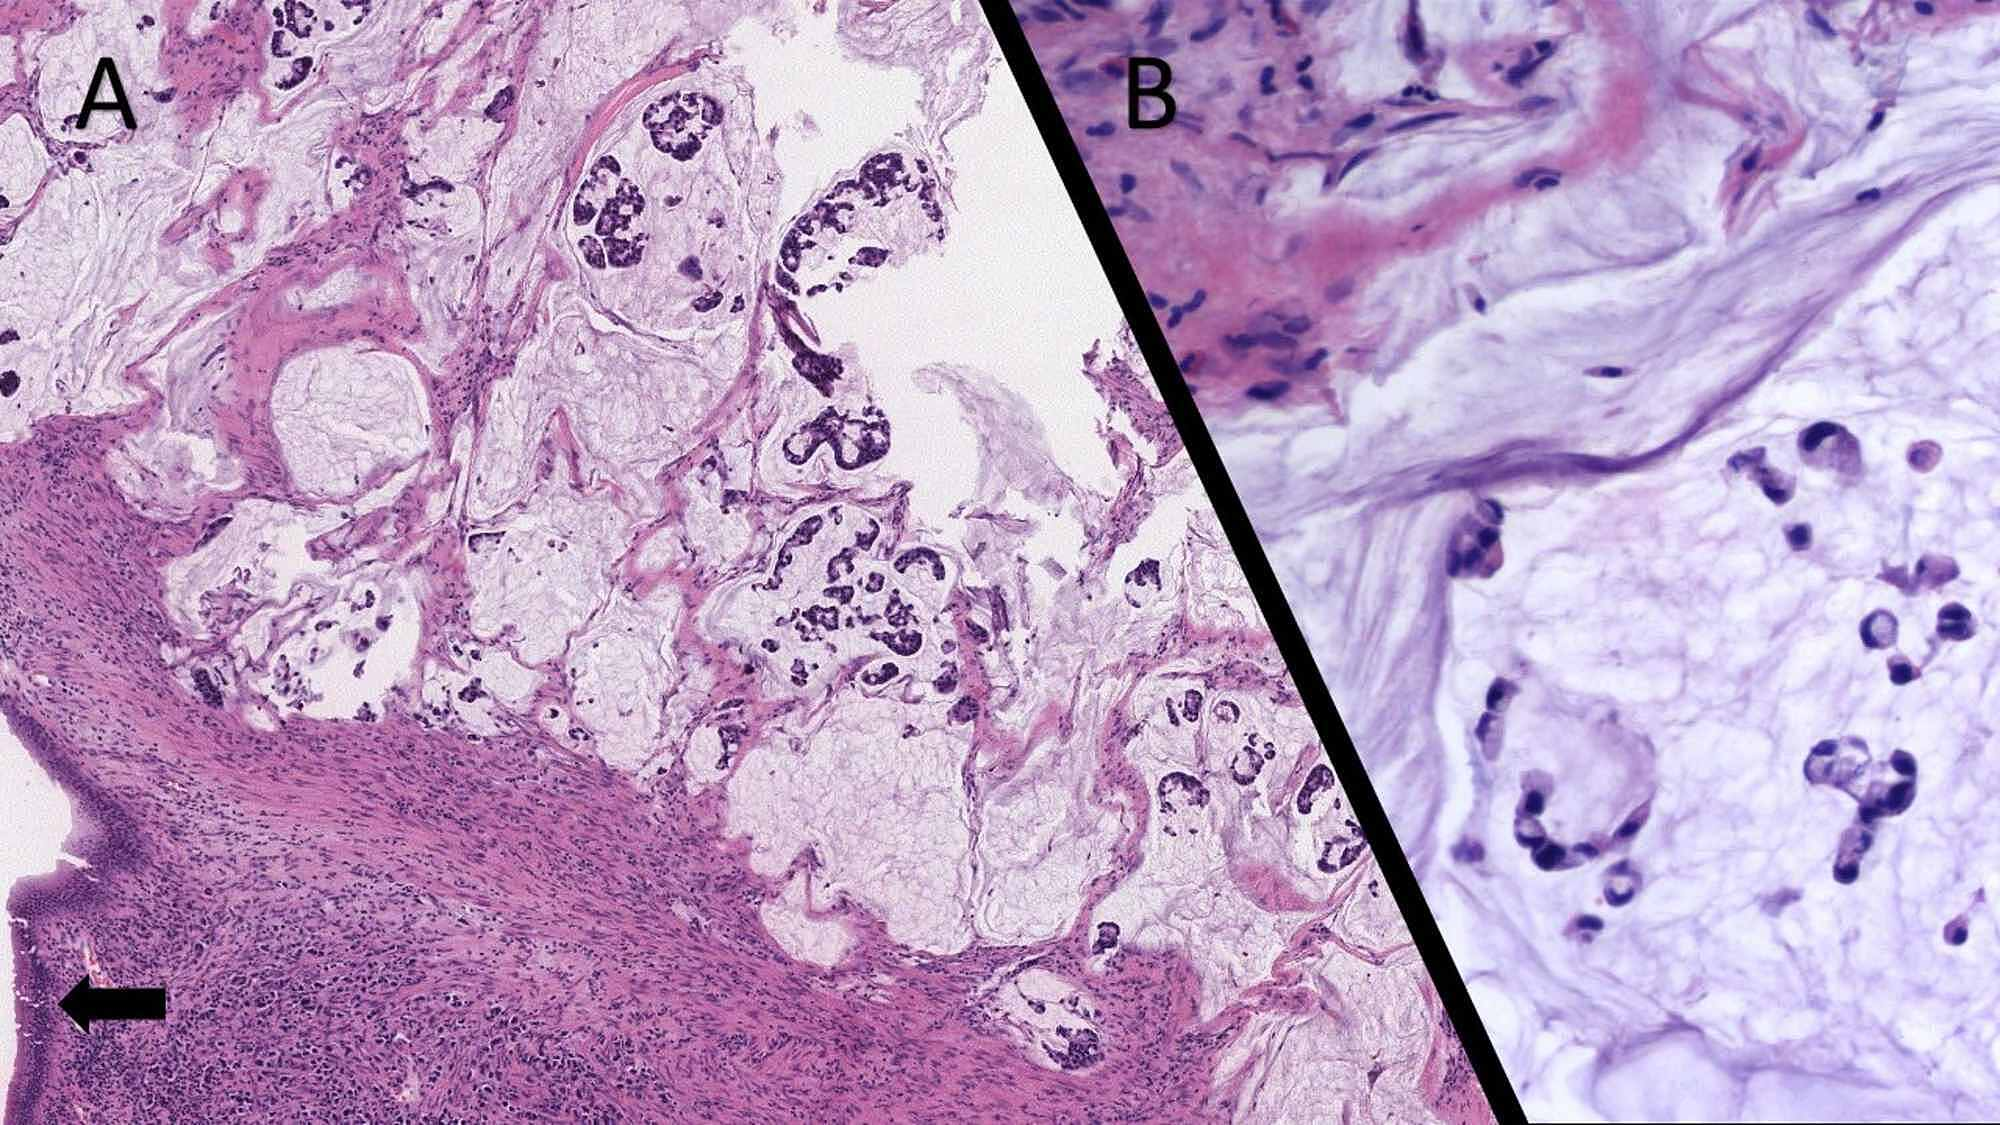 Cureus Most Common Pathway Of Metastasis Of Rectal Signet Ring Cell Carcinoma To The Skin Hematogenous